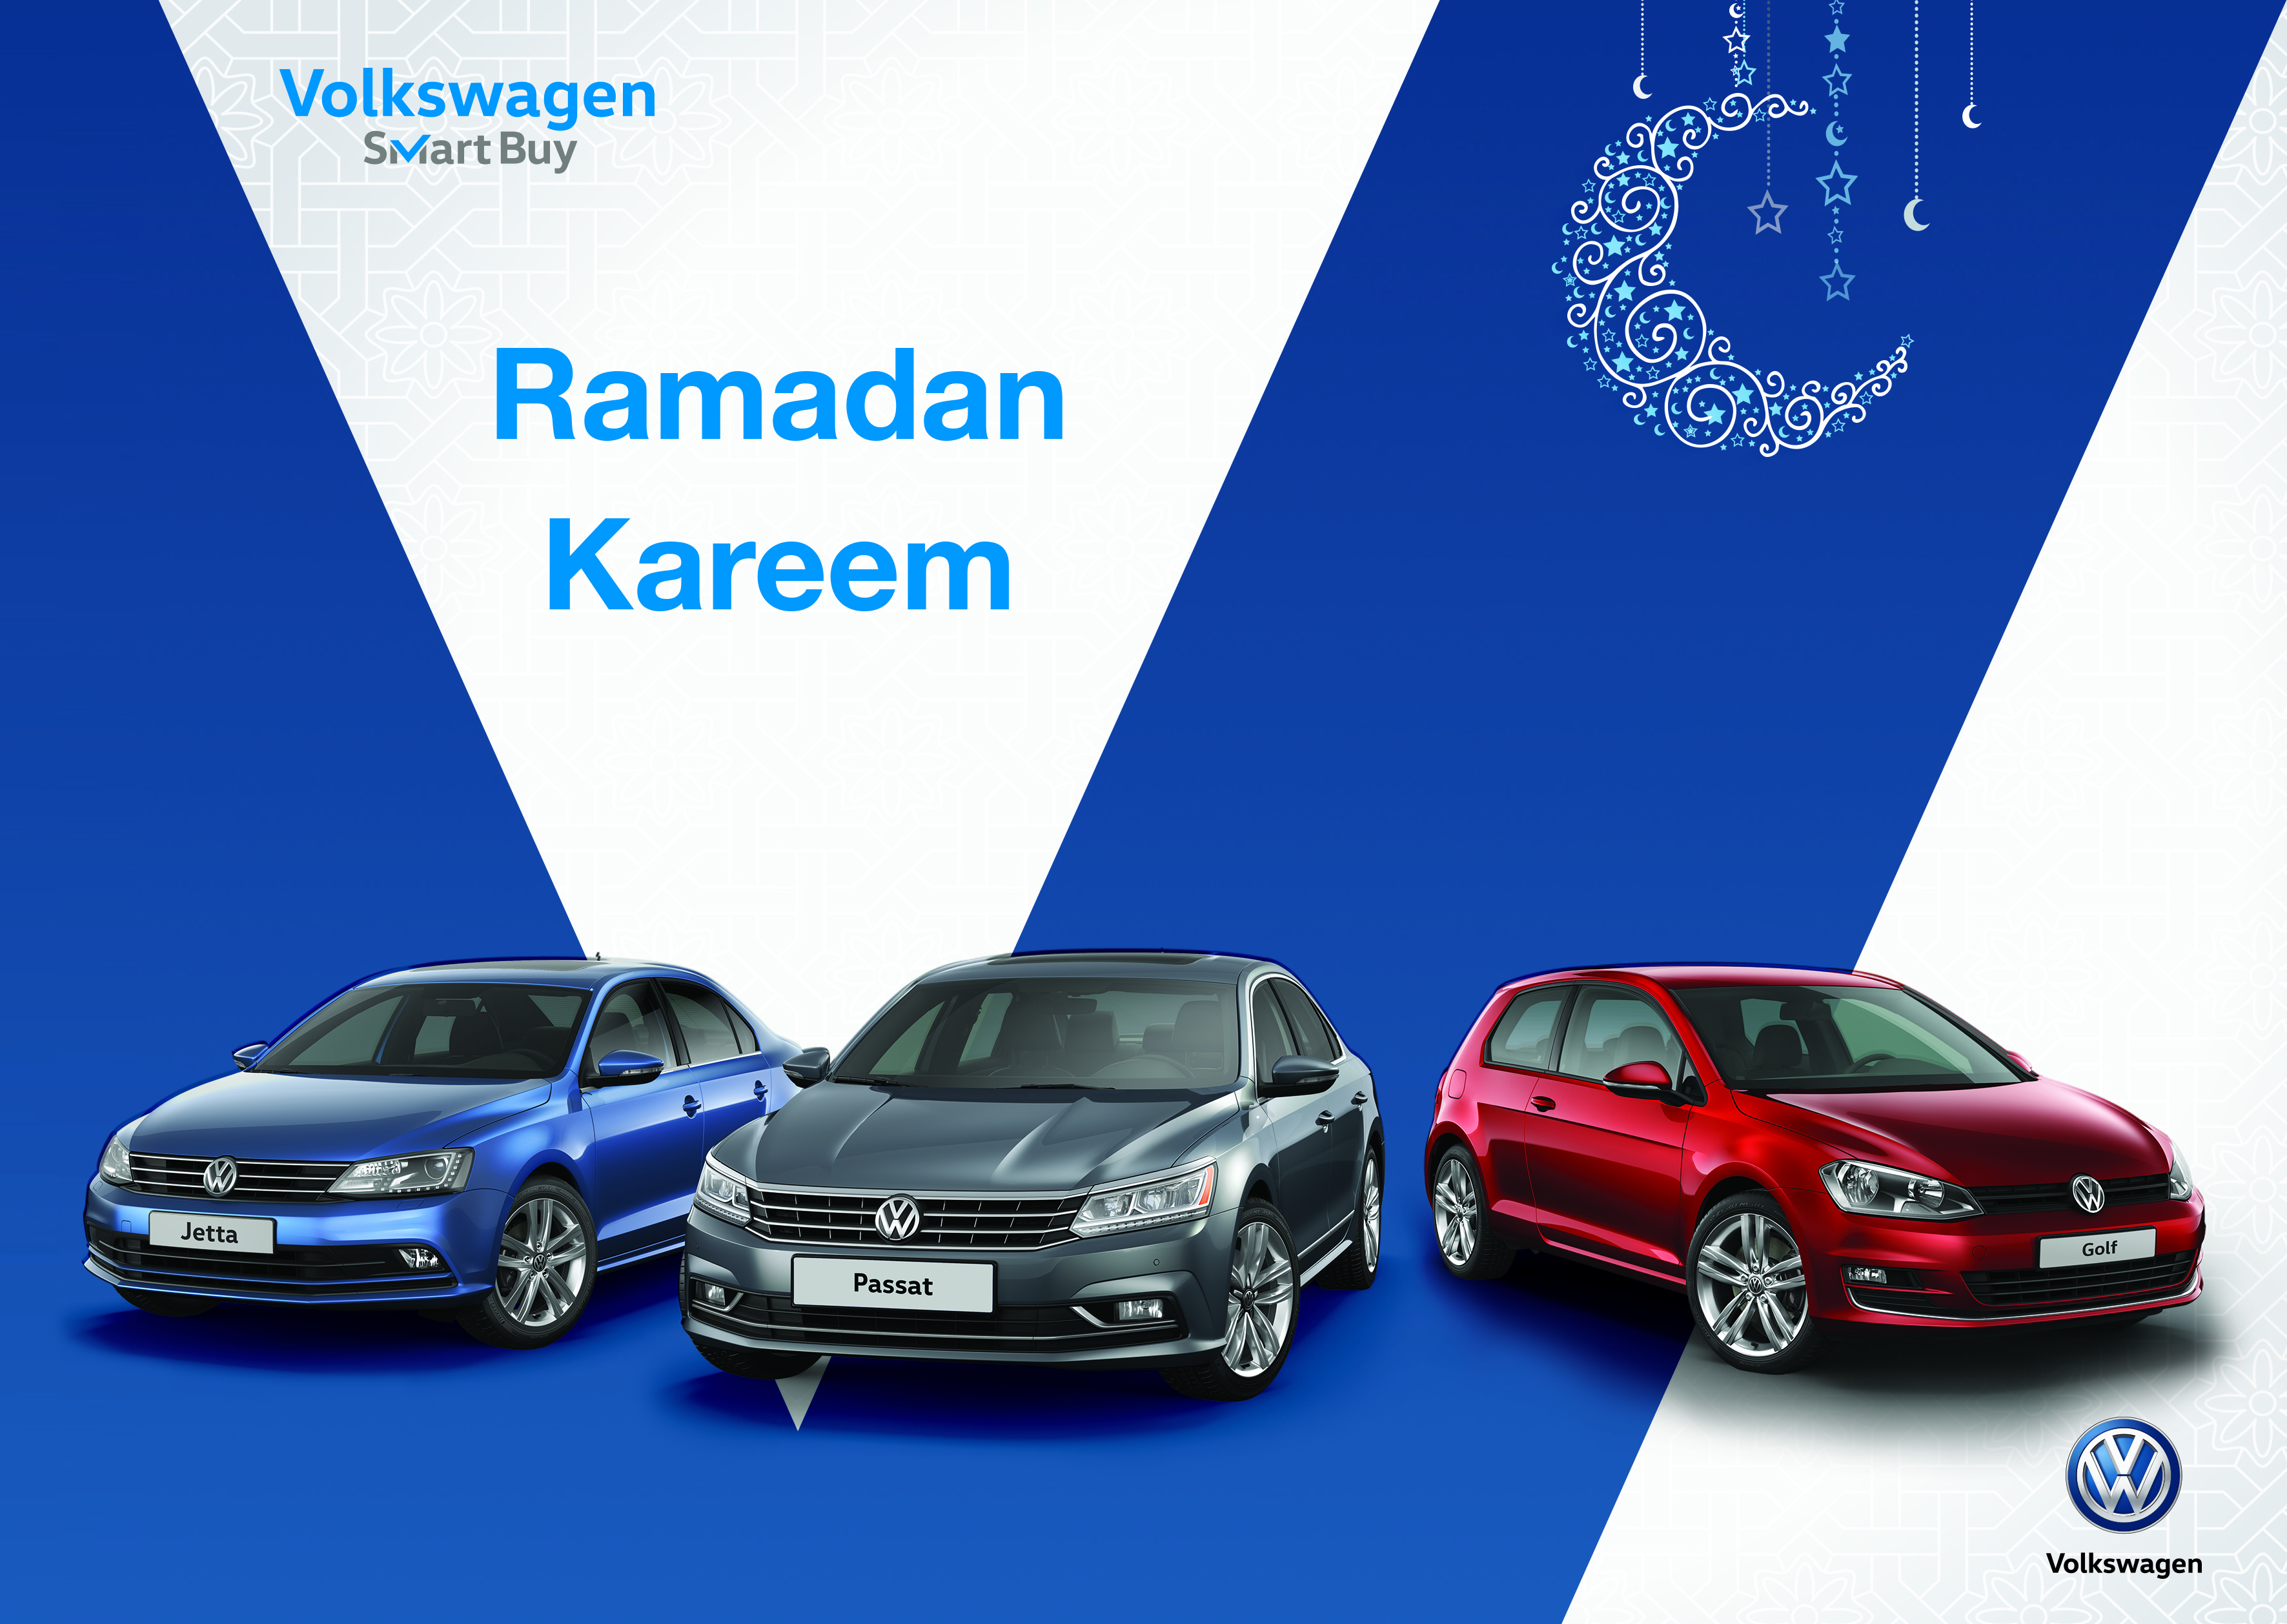 Celebrate Ramadan with the Smart Buy from Volkswagen Qatar